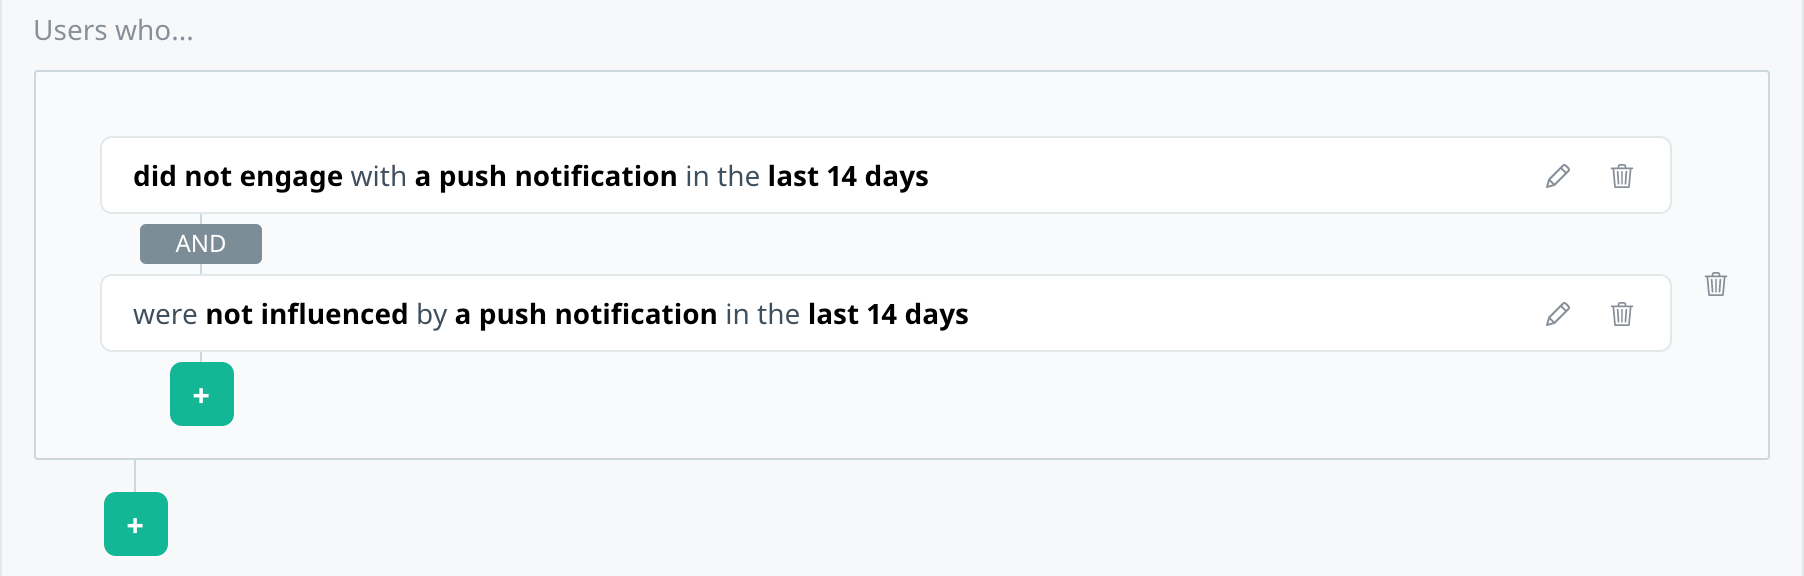 Filter summary showing multiple filters to target users who did not engage or influenced by notification